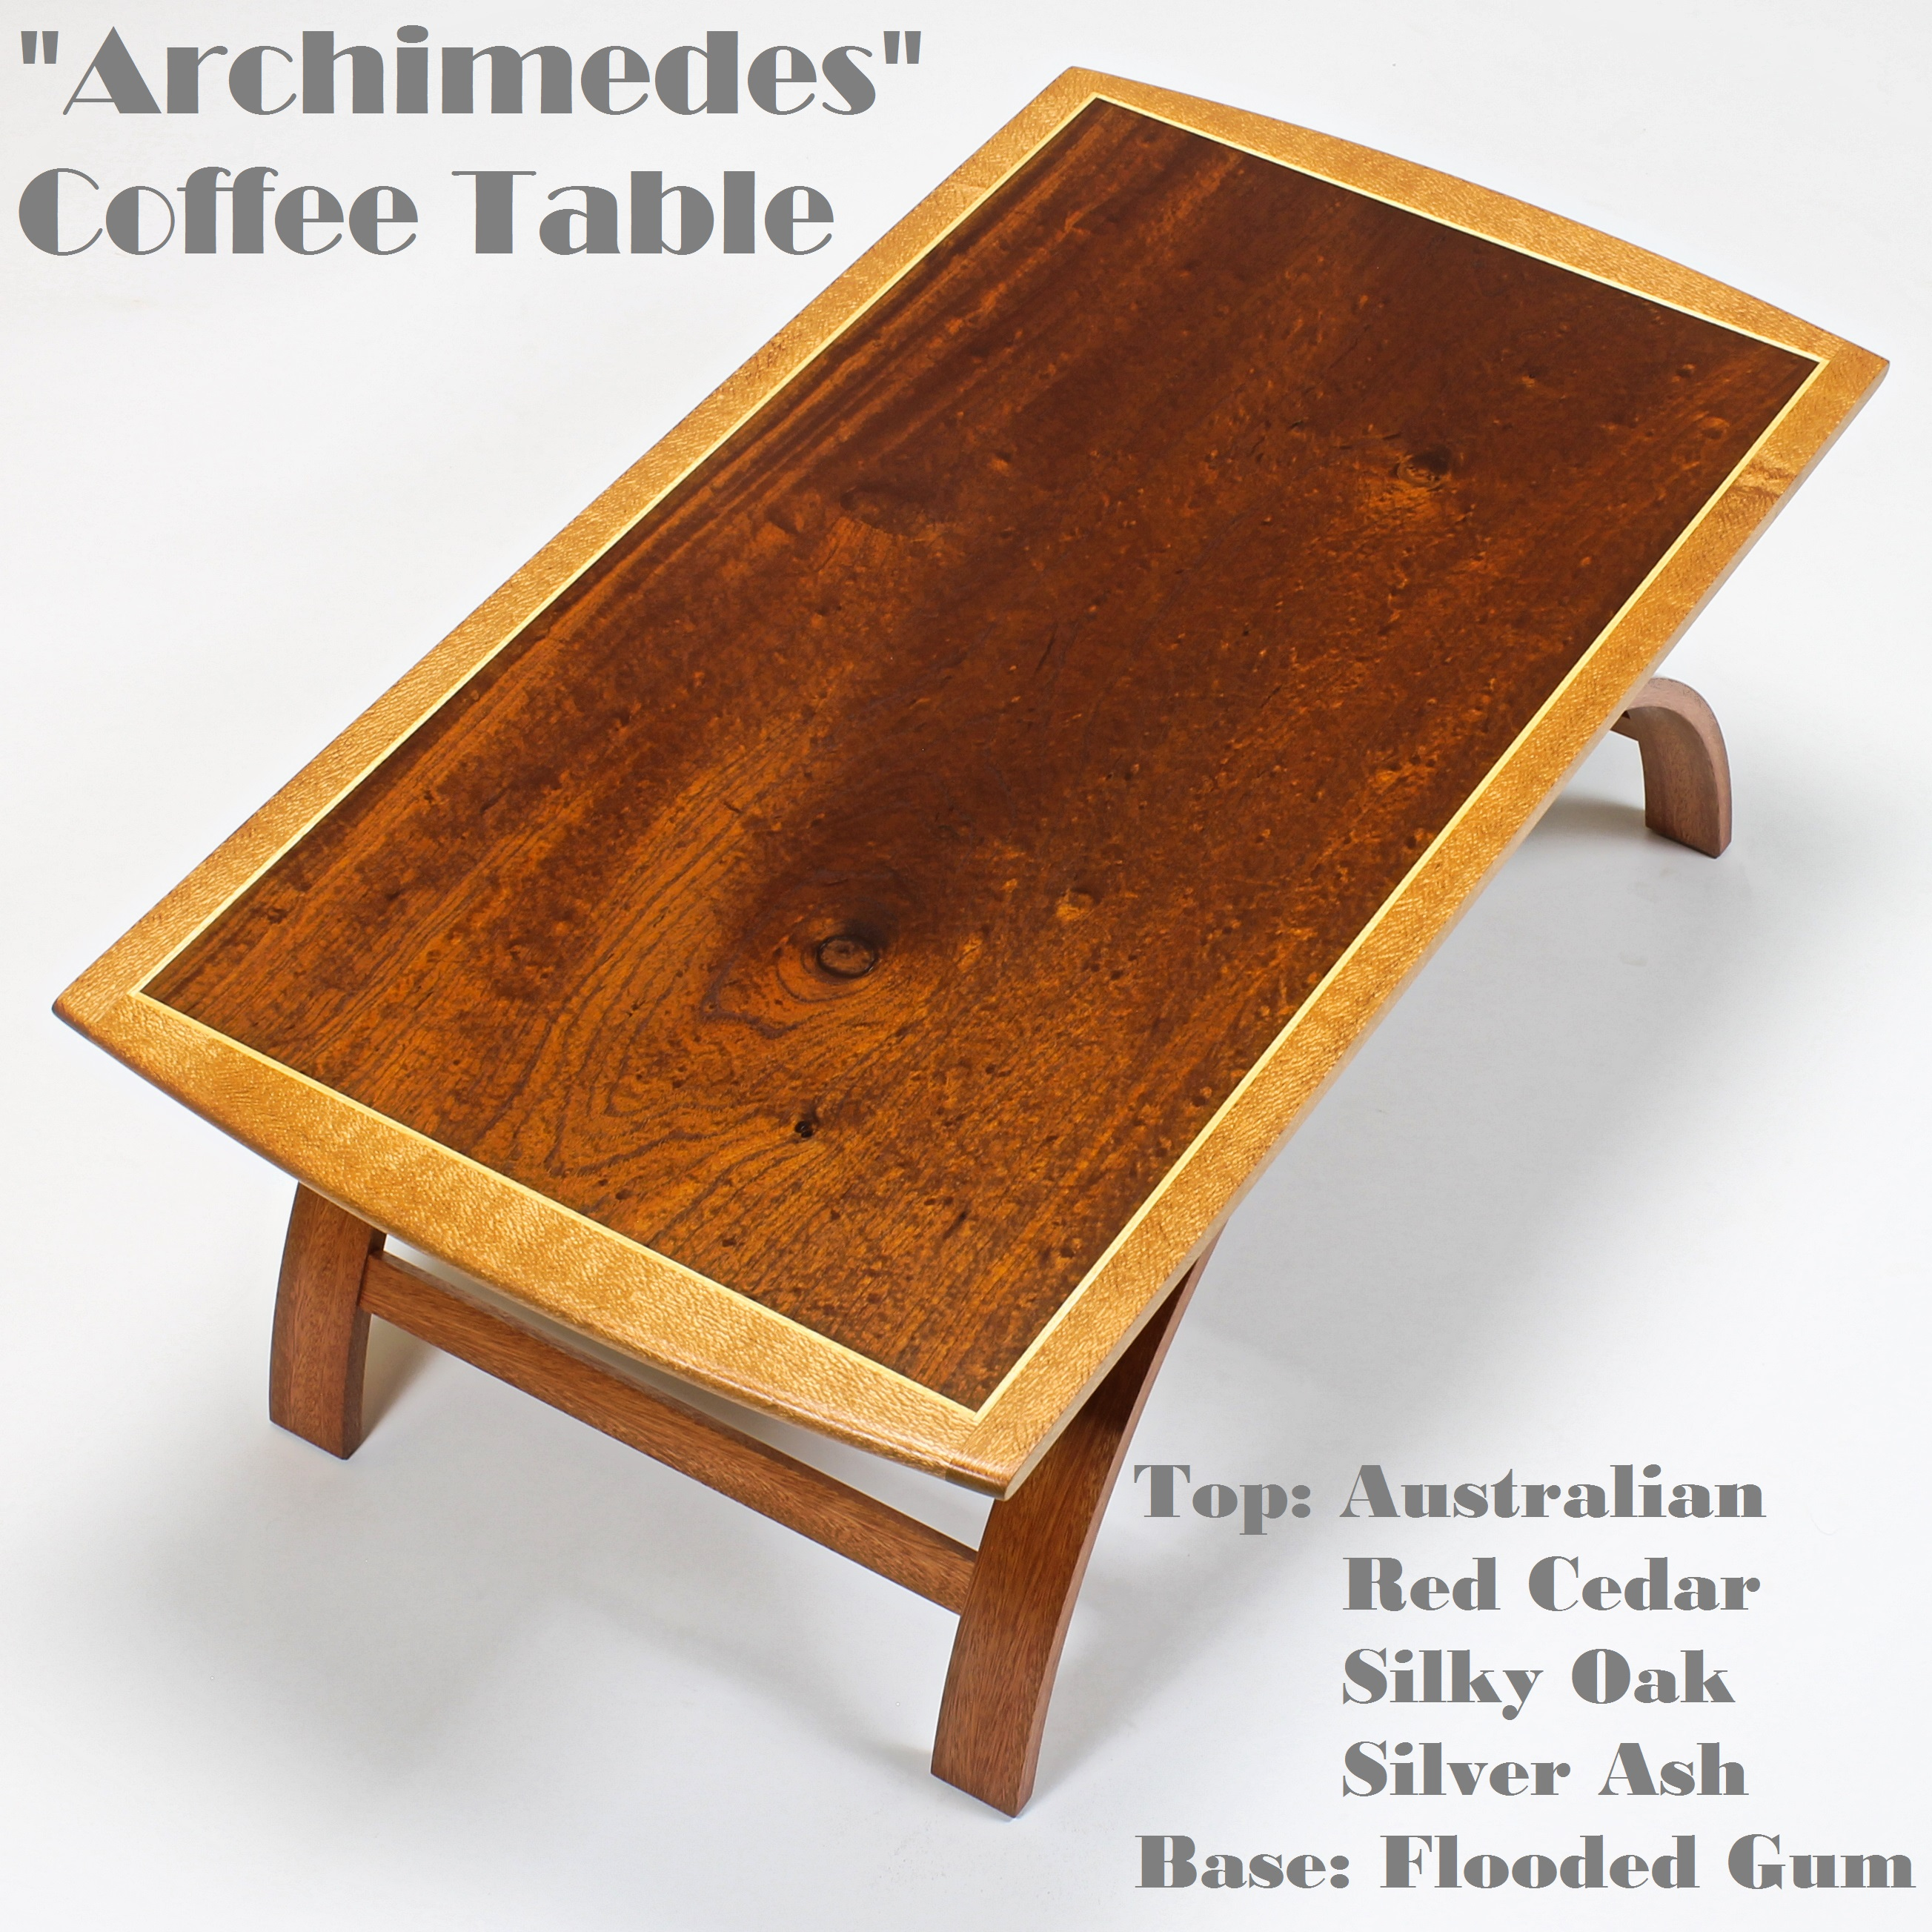 Archimedes Coffee Table 5 Website